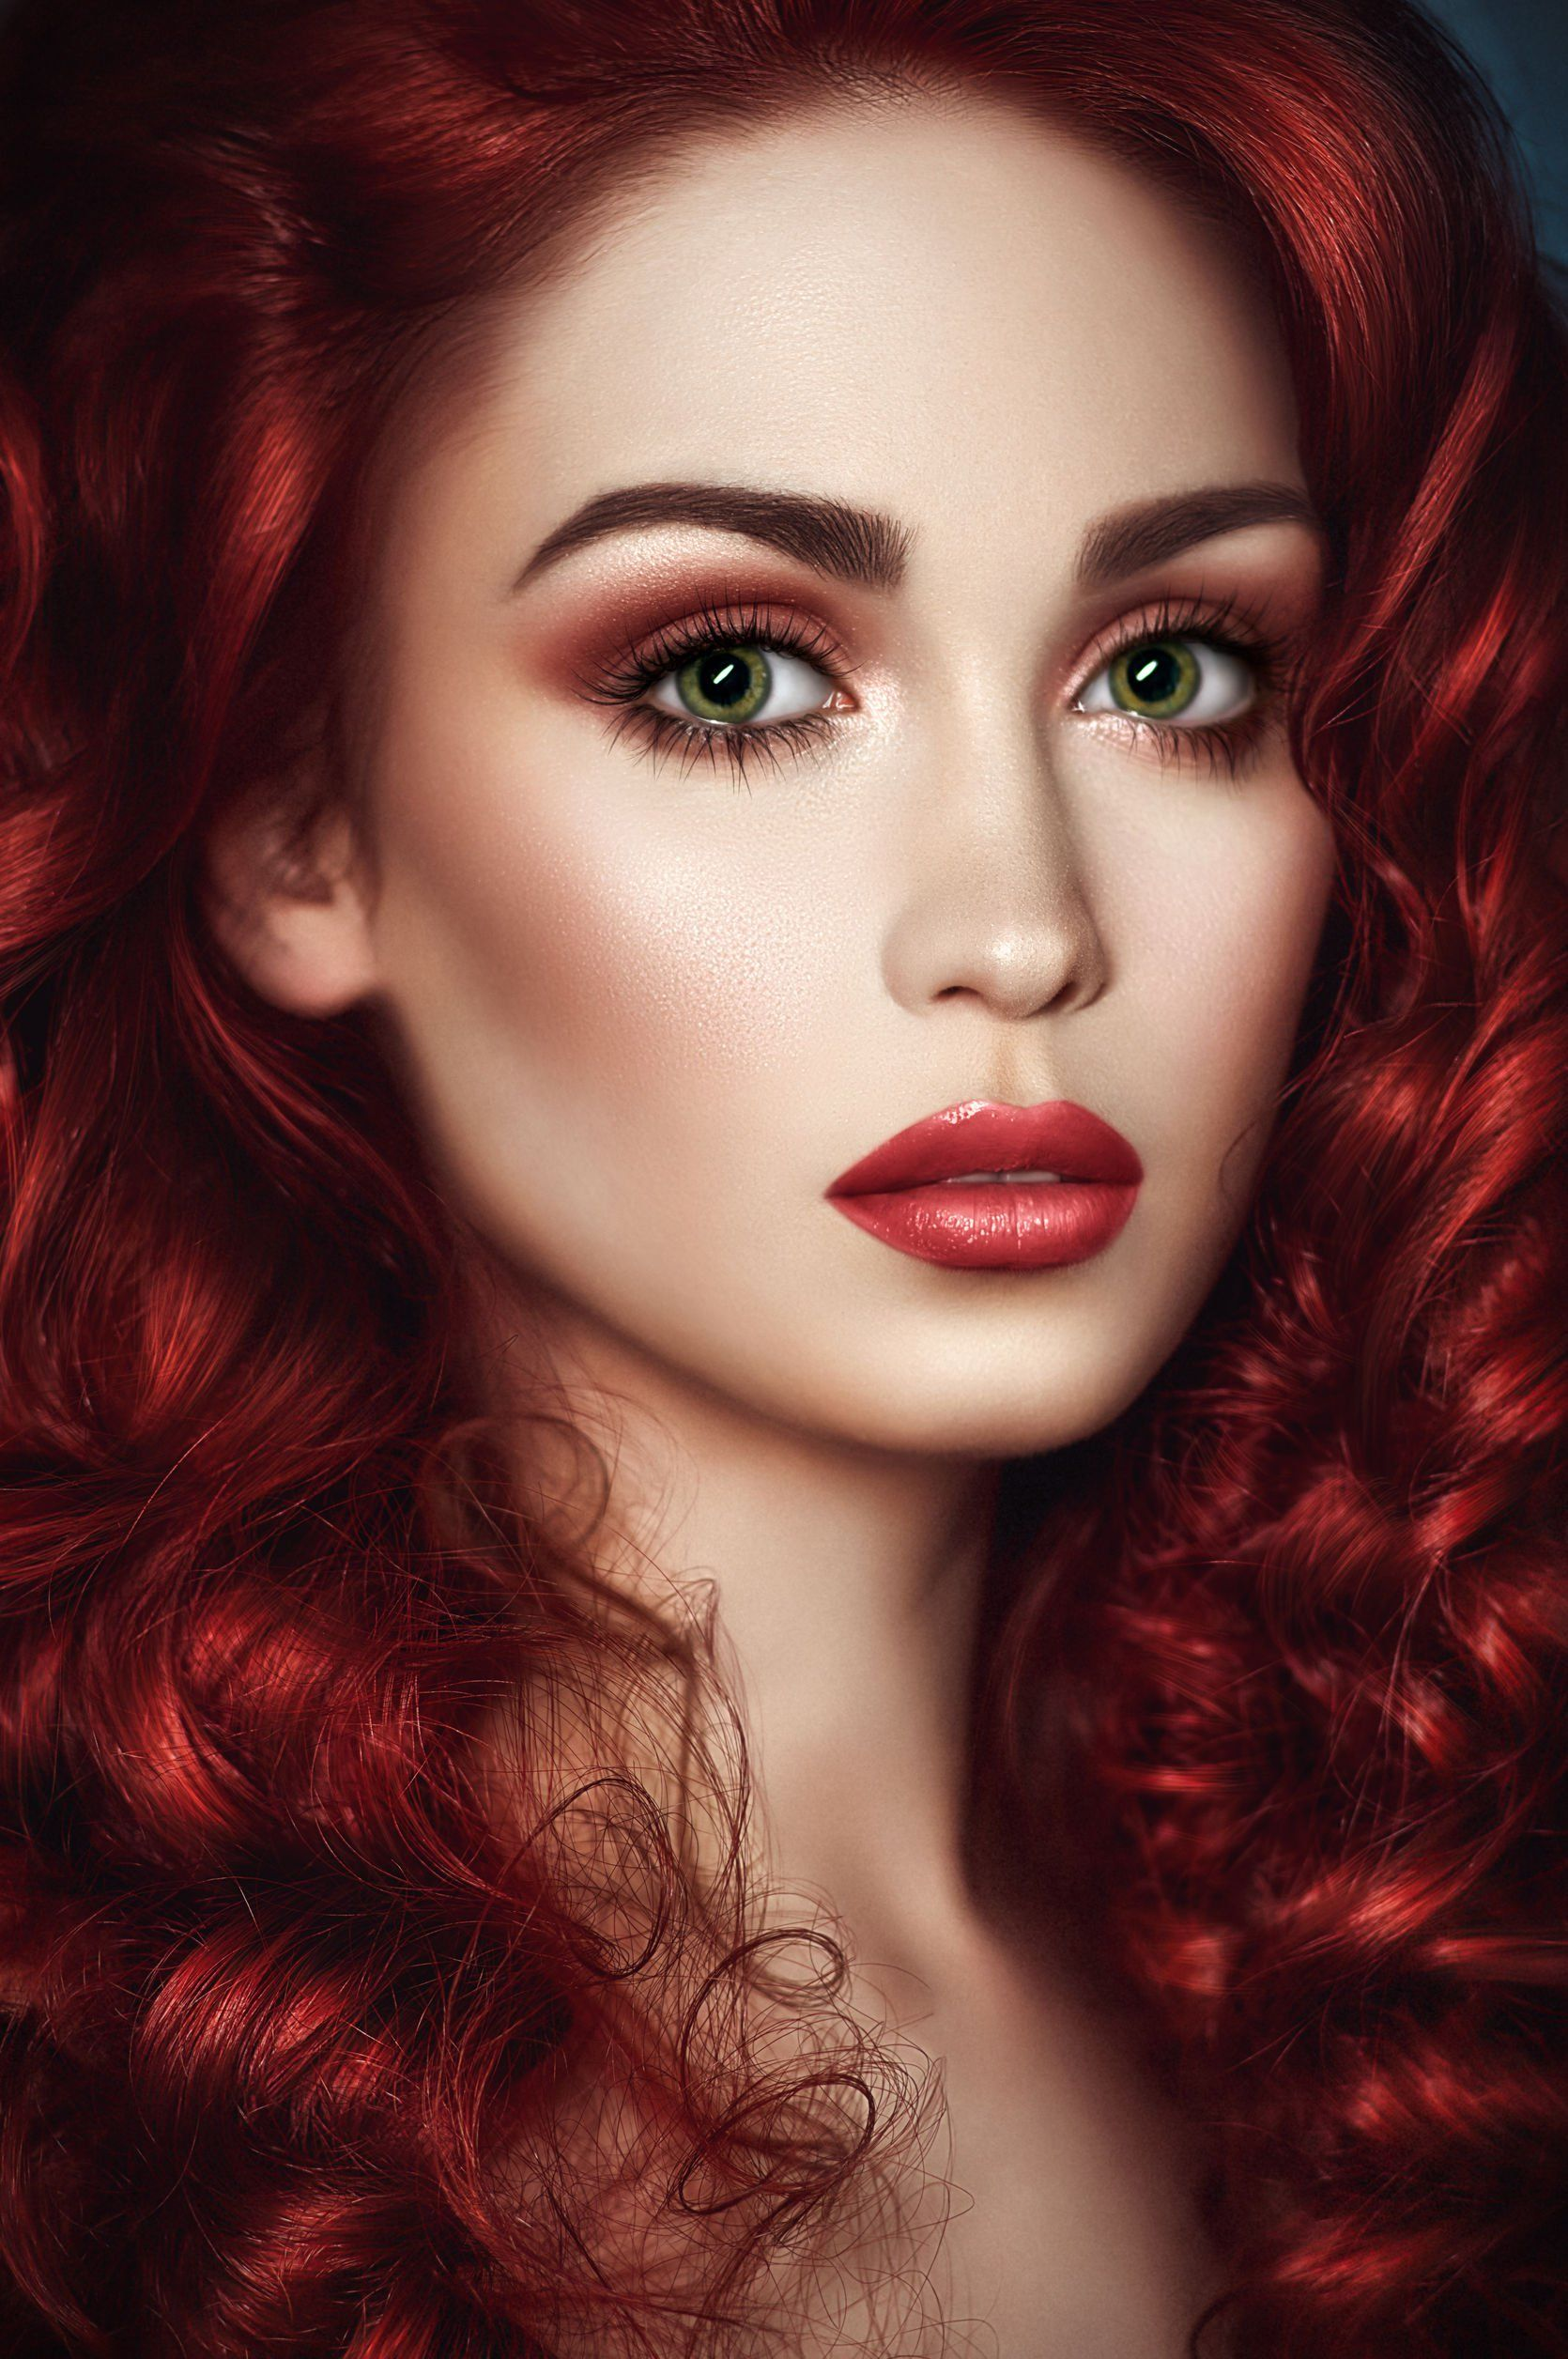 What S The Best Hair Color For Green Eyes Juvetress Hair Colour For Green Eyes Red Hair Green Eyes Green Eyes Blonde Hair